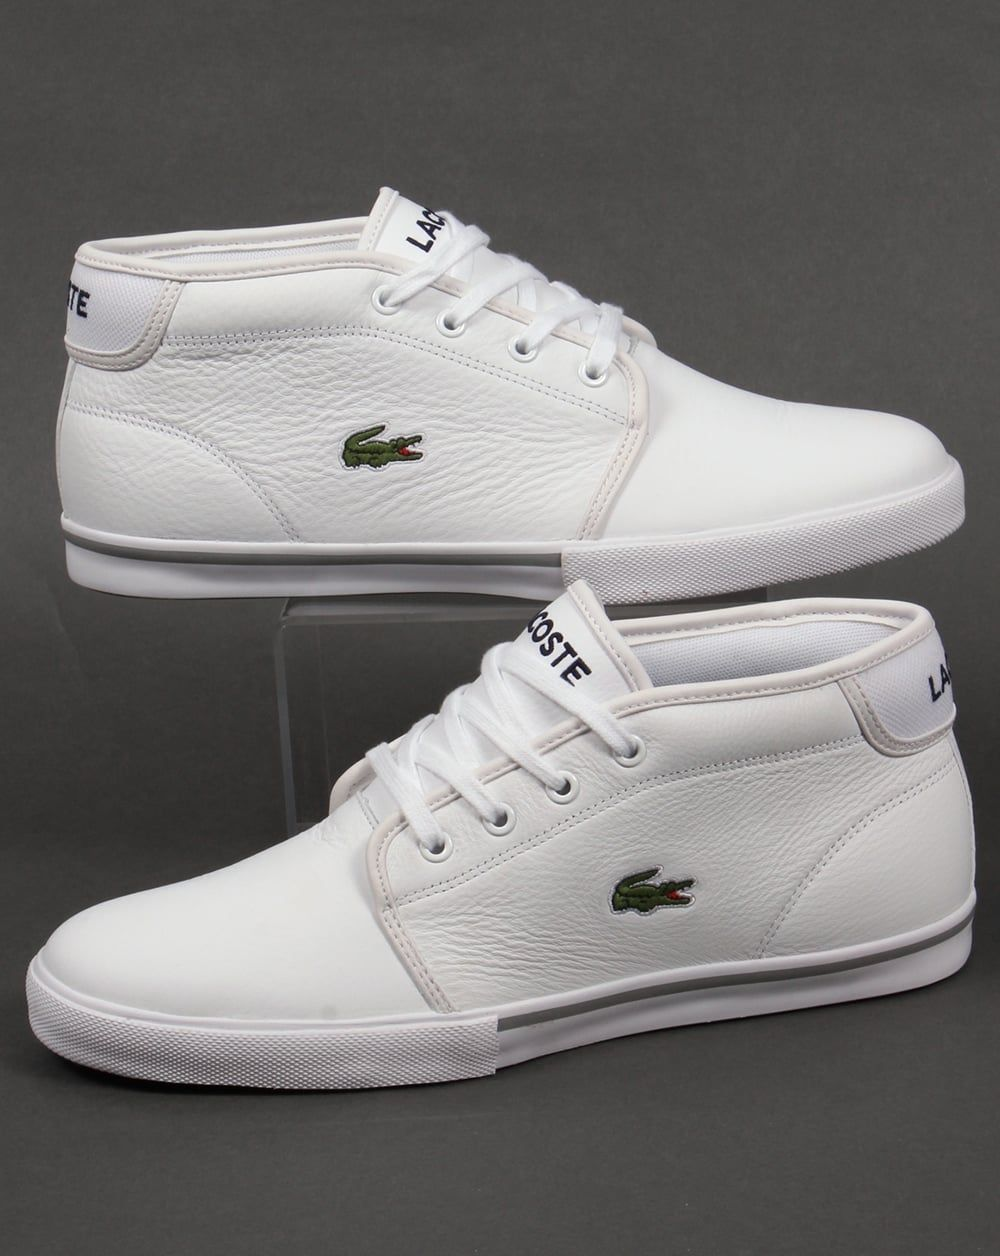 4f2f0d77e6 Pin by Datkin Assyllhan on men's fashion | White casual shoes, Leather  trainers, Lacoste trainers